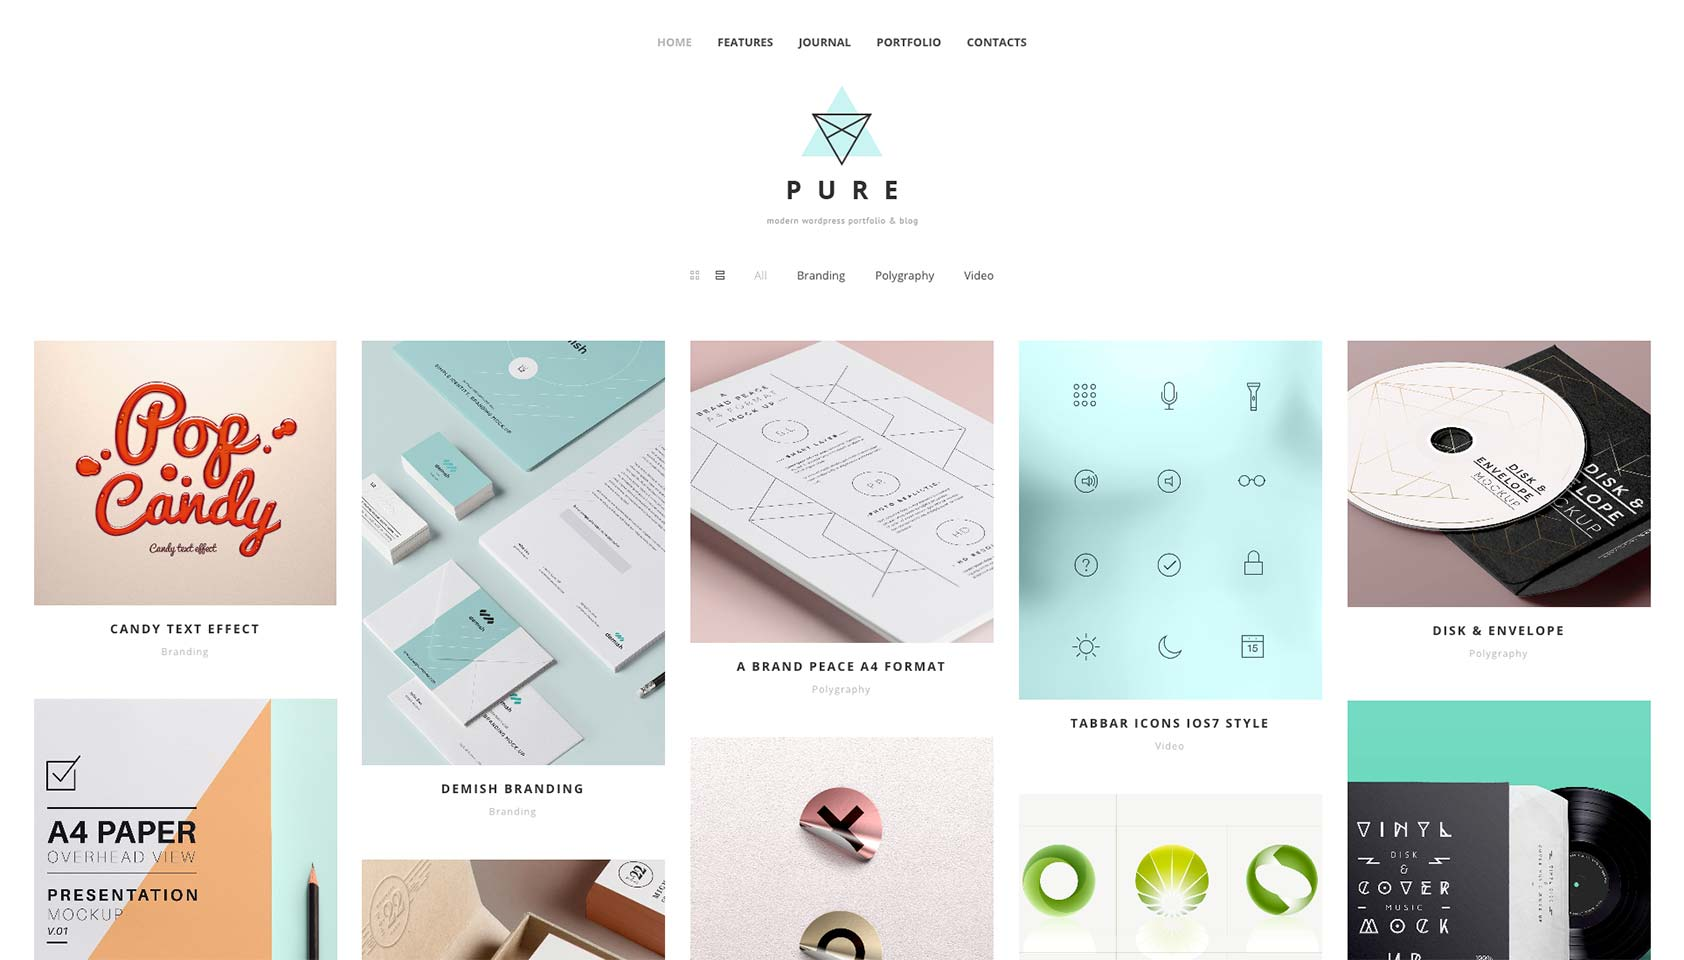 Free download: Pure WordPress theme